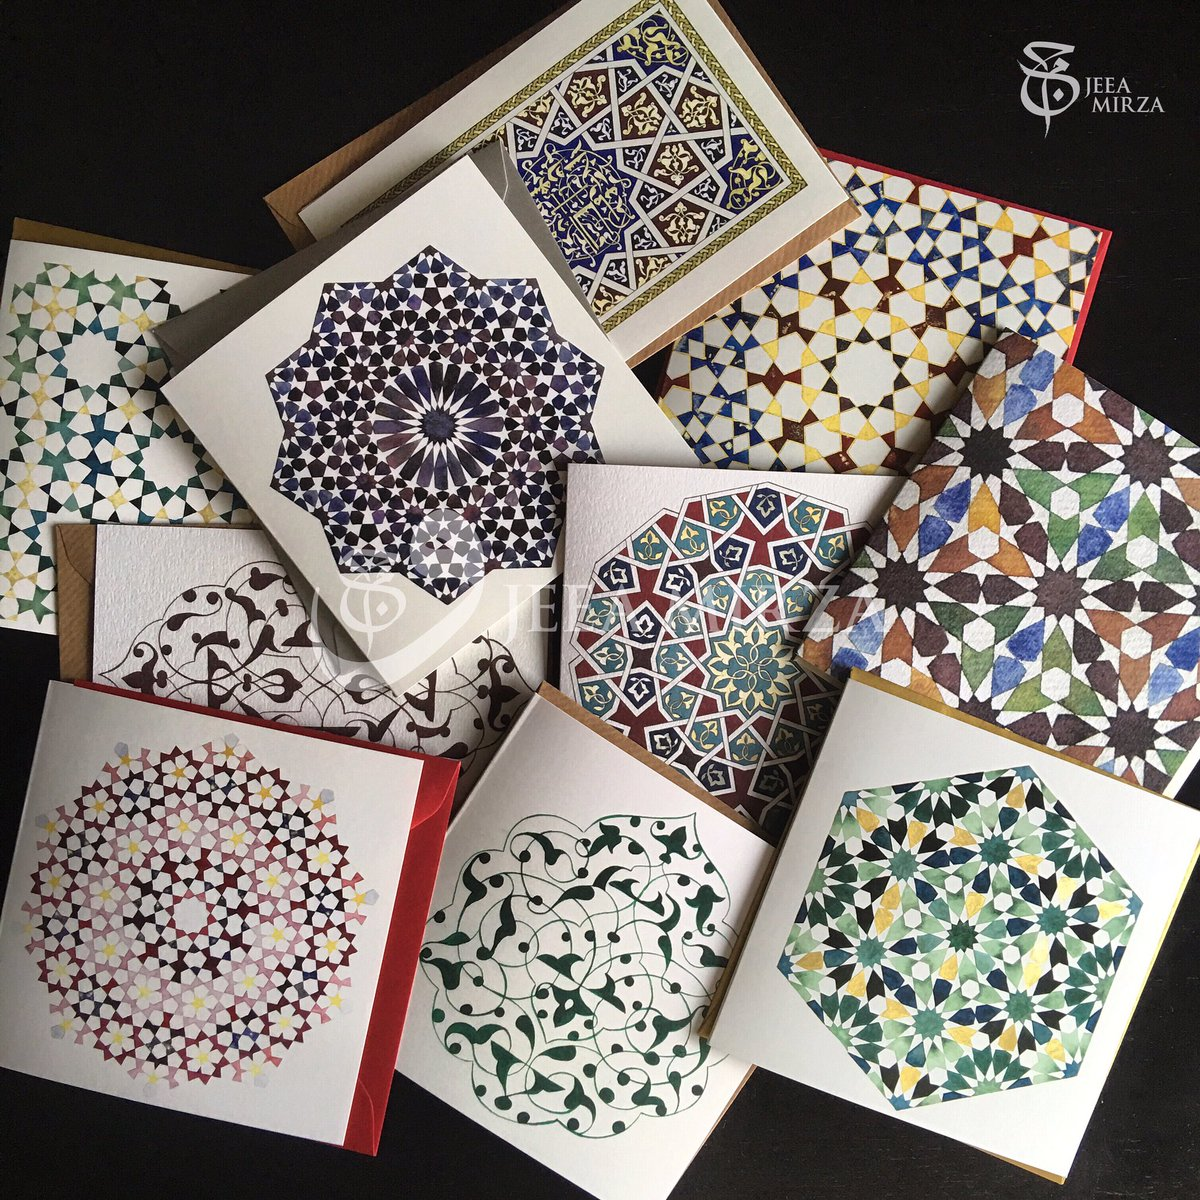 Very limited stock of #Ramadan  #eid #GreetingCards available online - link in my bio ( http://www. jeeamirza.com  &nbsp;  ) #RamadanMubarak #originart<br>http://pic.twitter.com/T48ShWOyV2